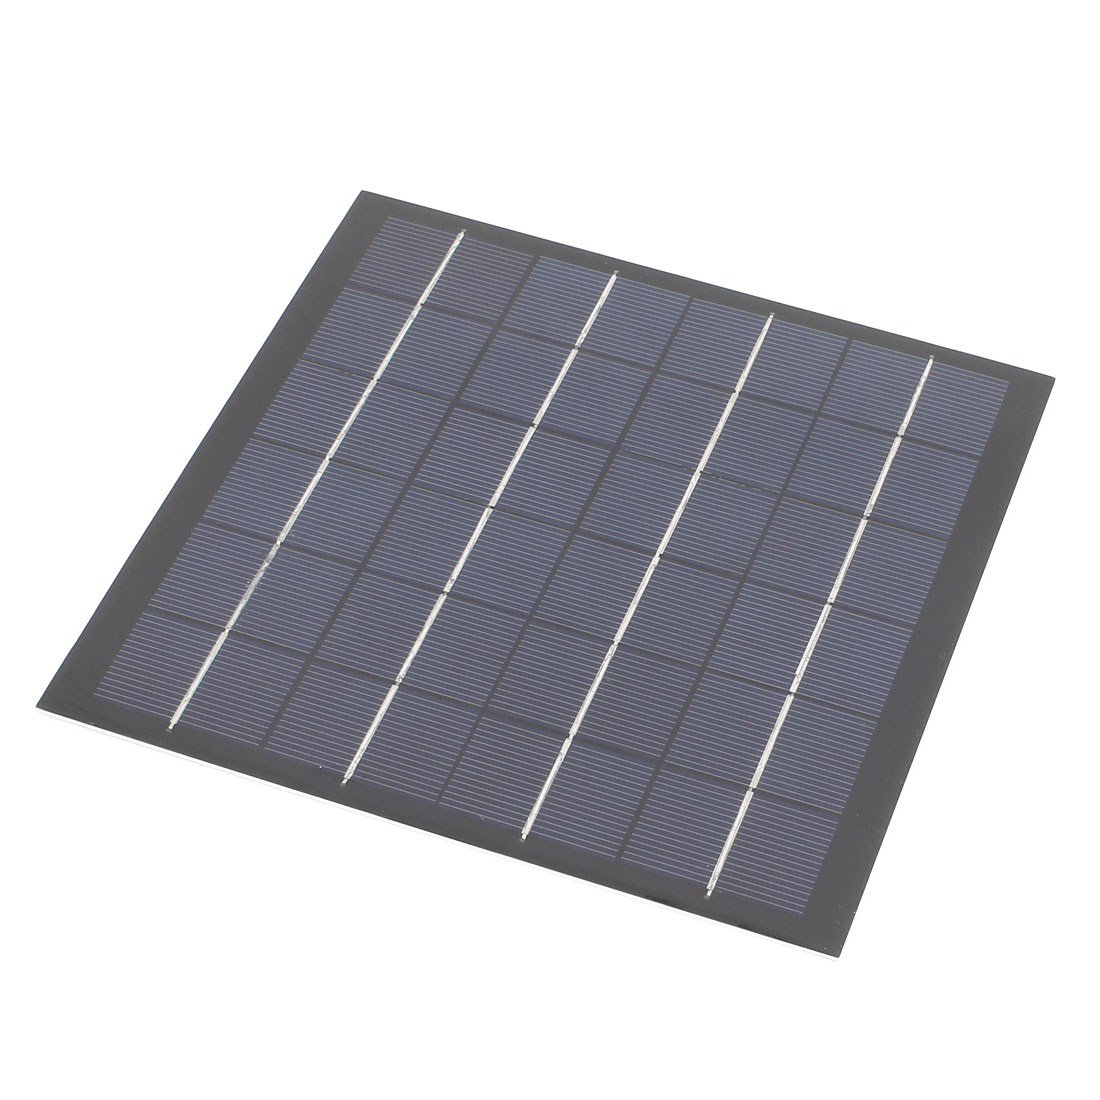 12V 5W DIY Polycrystallinesilicon Solar Panel Power Cell Battery Charger 195mm x 190mm